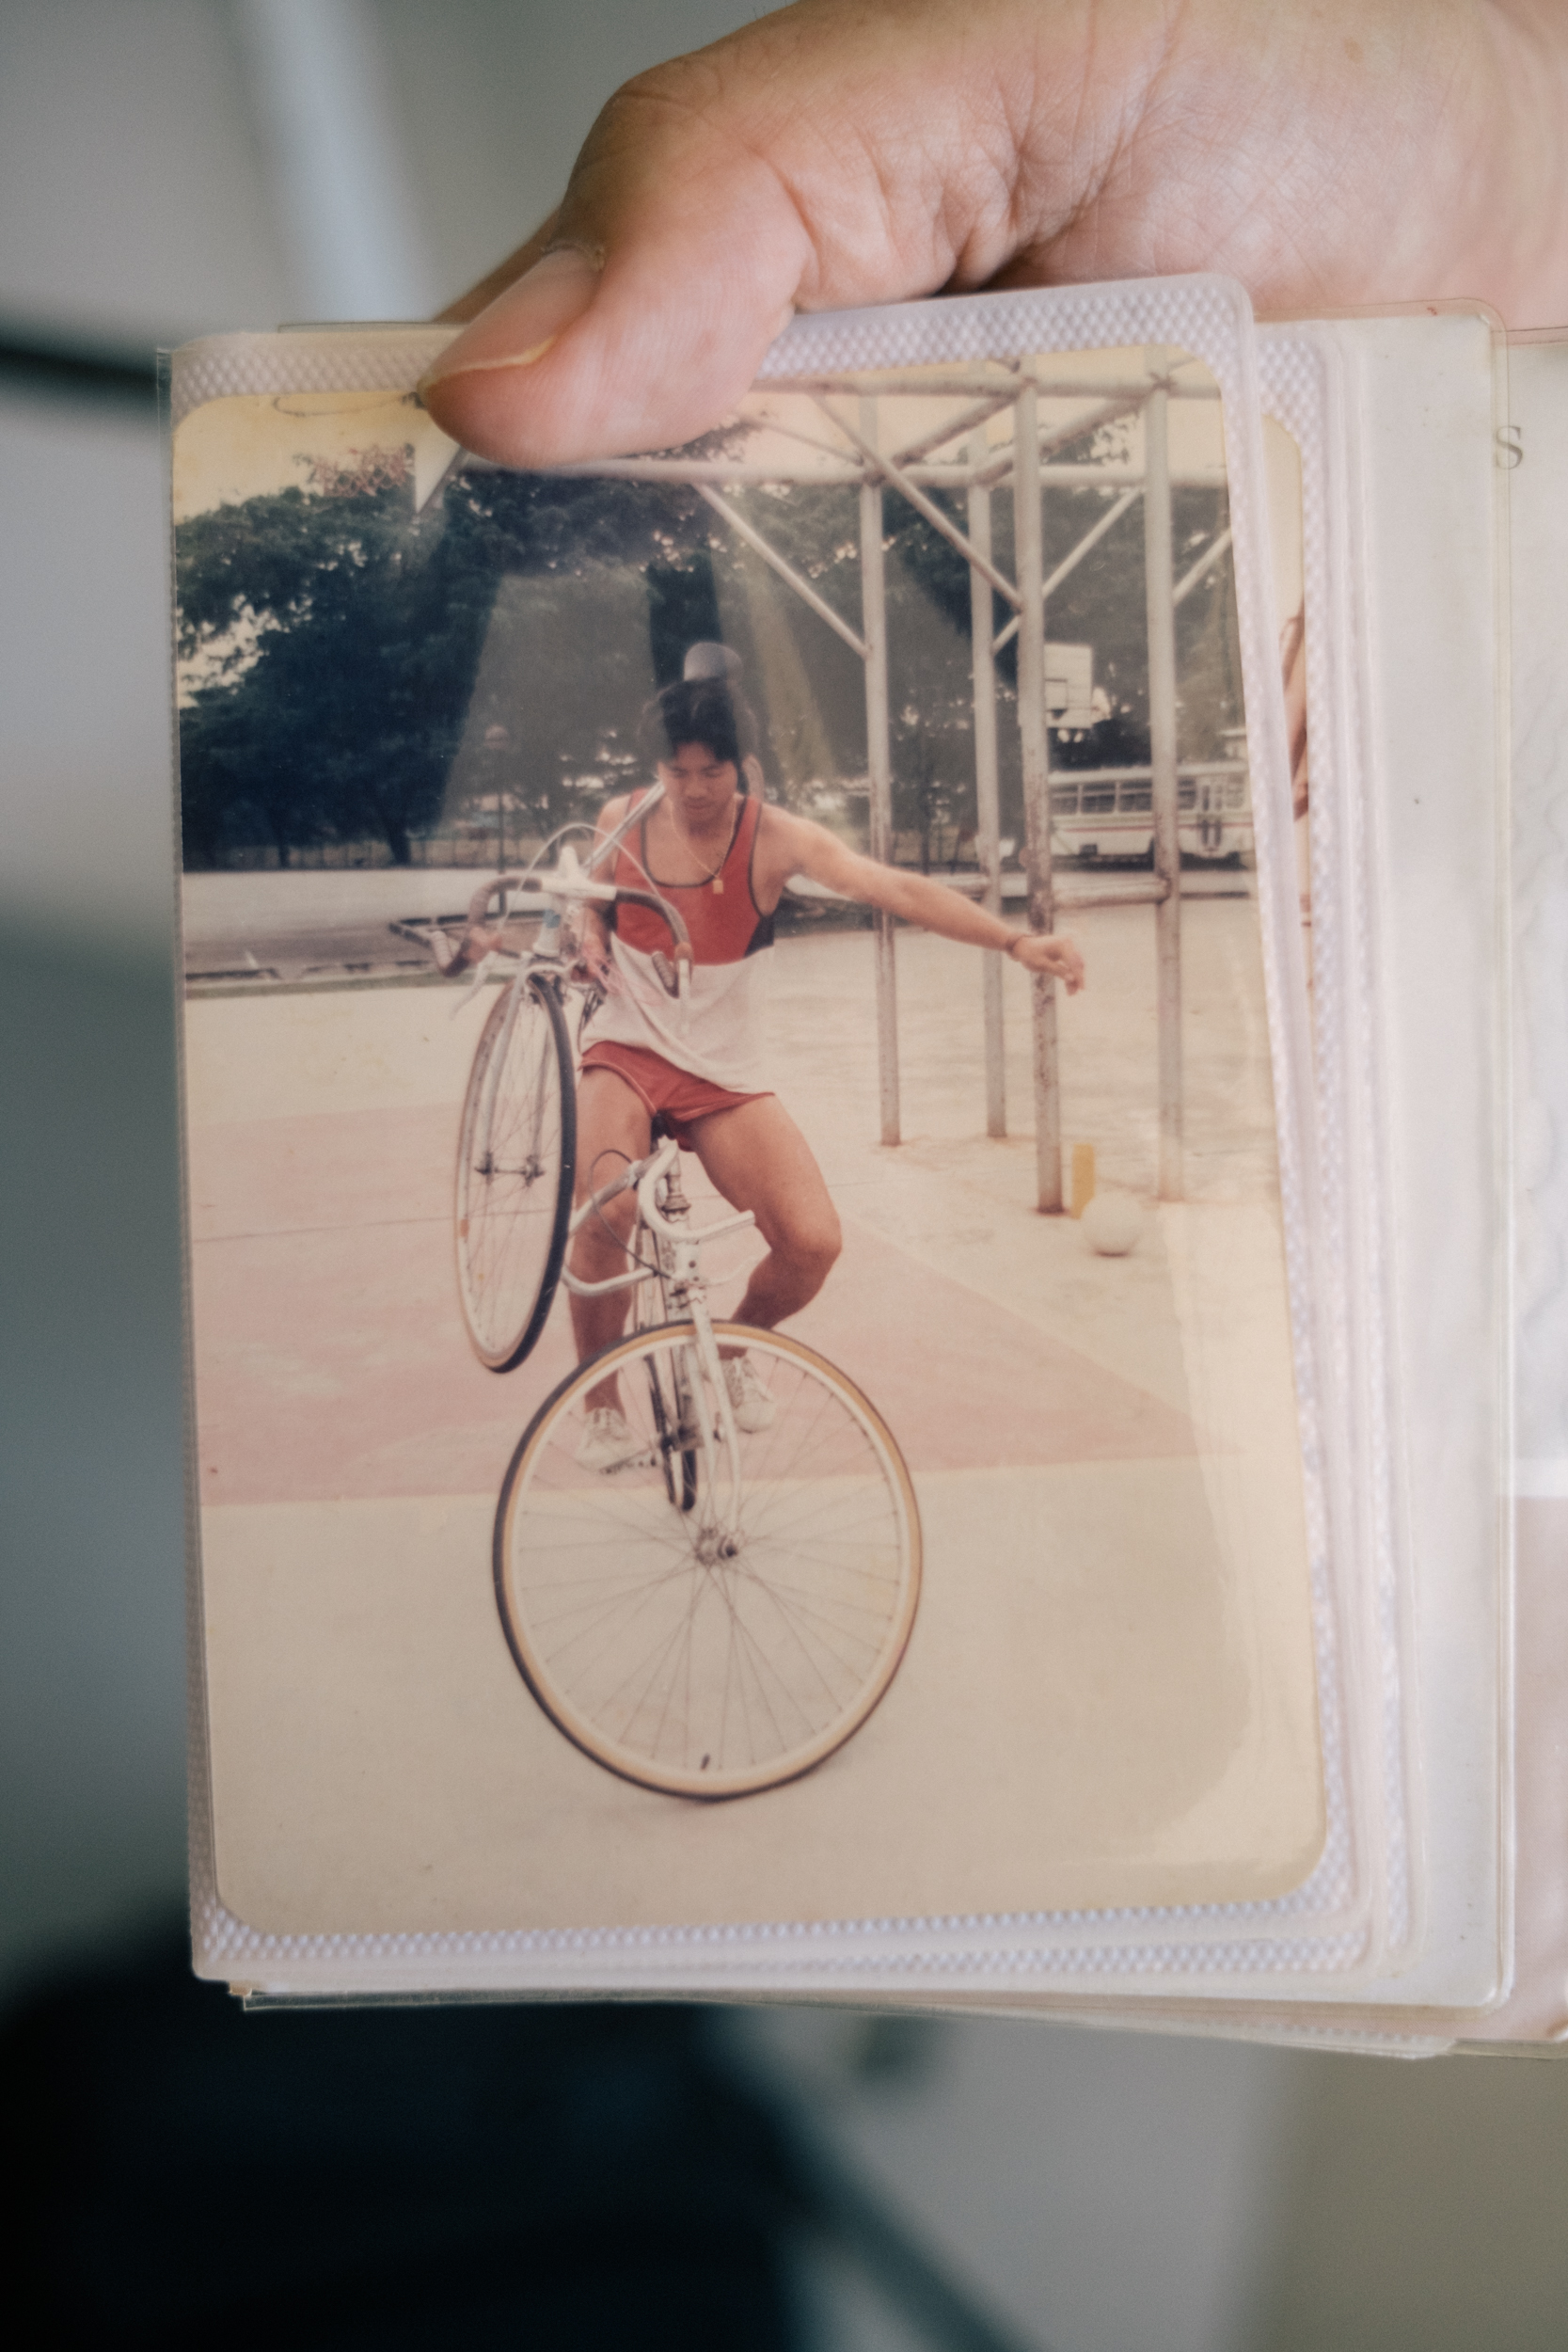 Image of Henry Leong cycling while carrying another bicycle